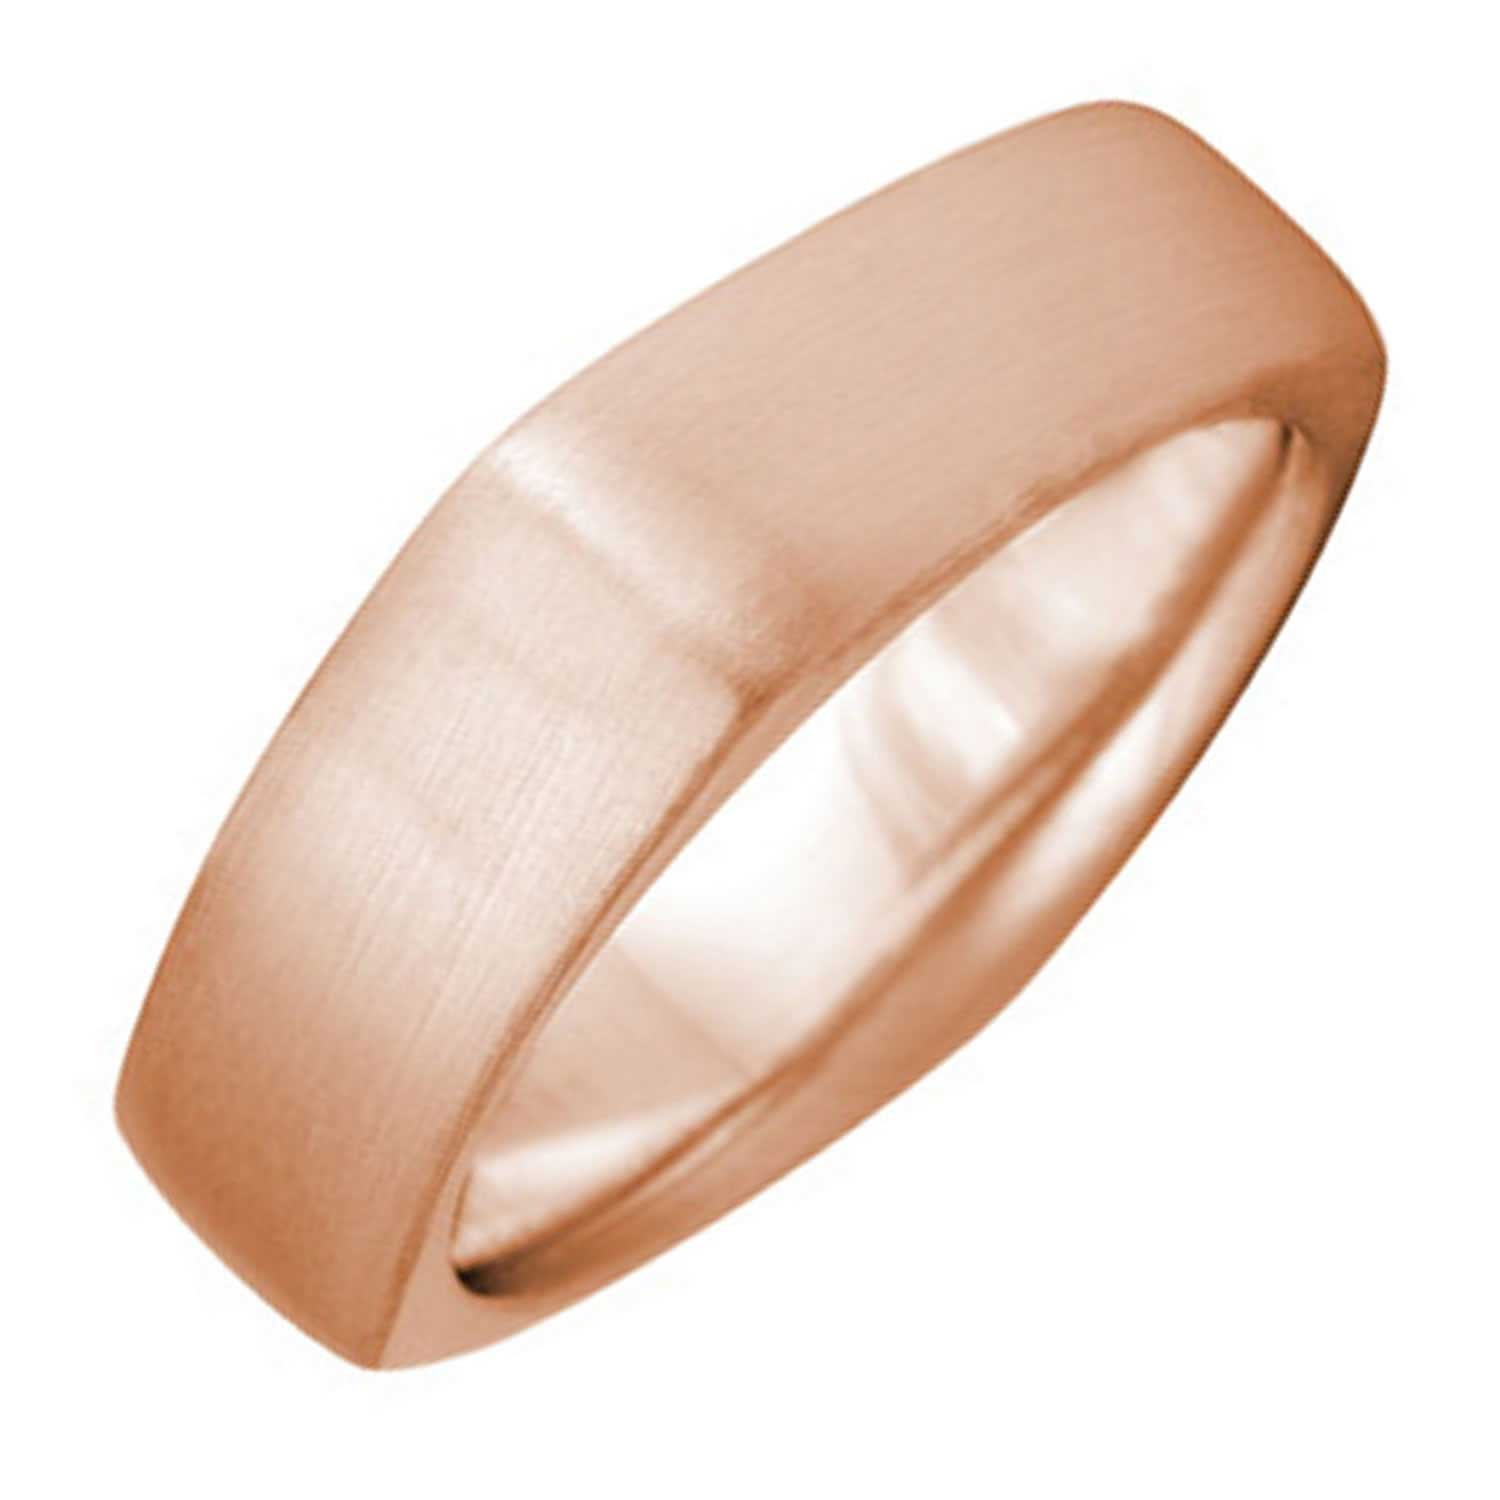 14K Rose Gold Traditional Top Flat Men's Square Comfort Fit Wedding Band (5mm) Size-9.5c1 by Wedding Rings Depot